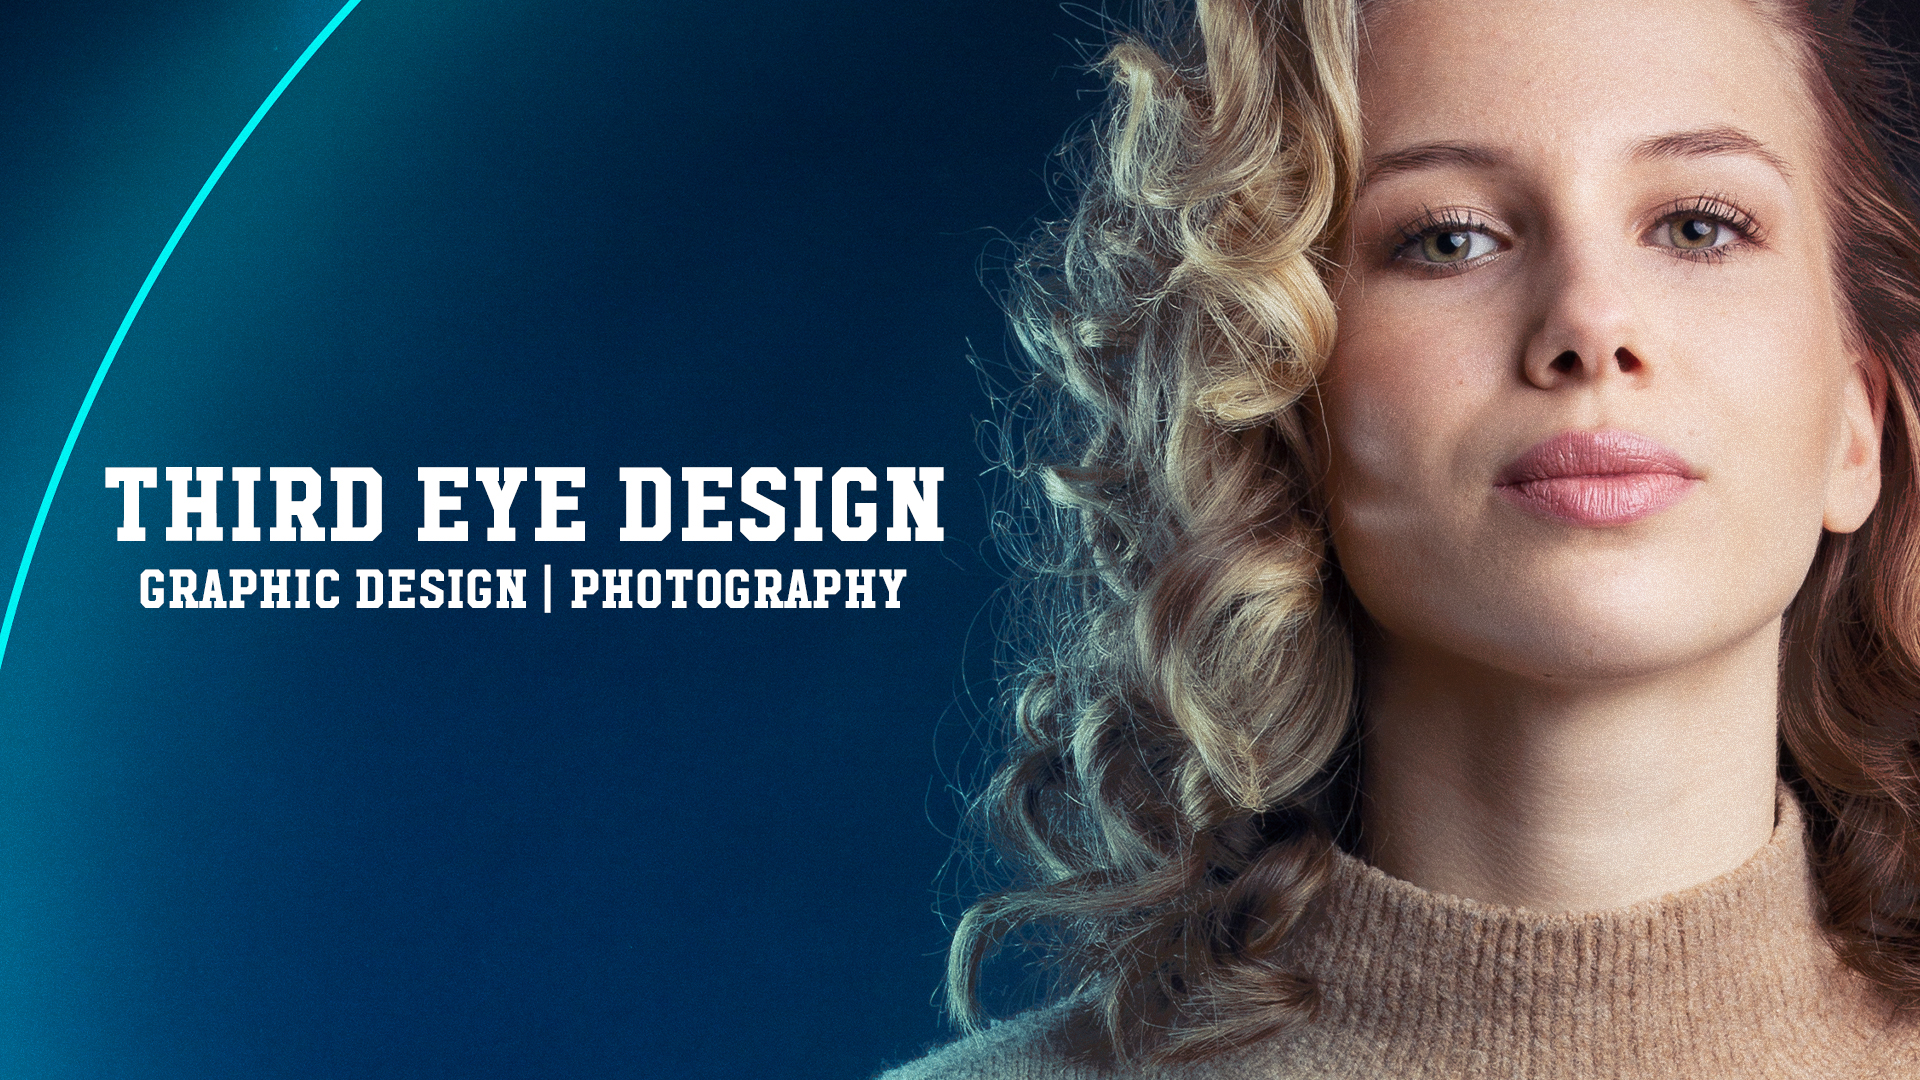 ThirdEyeDesign.nl